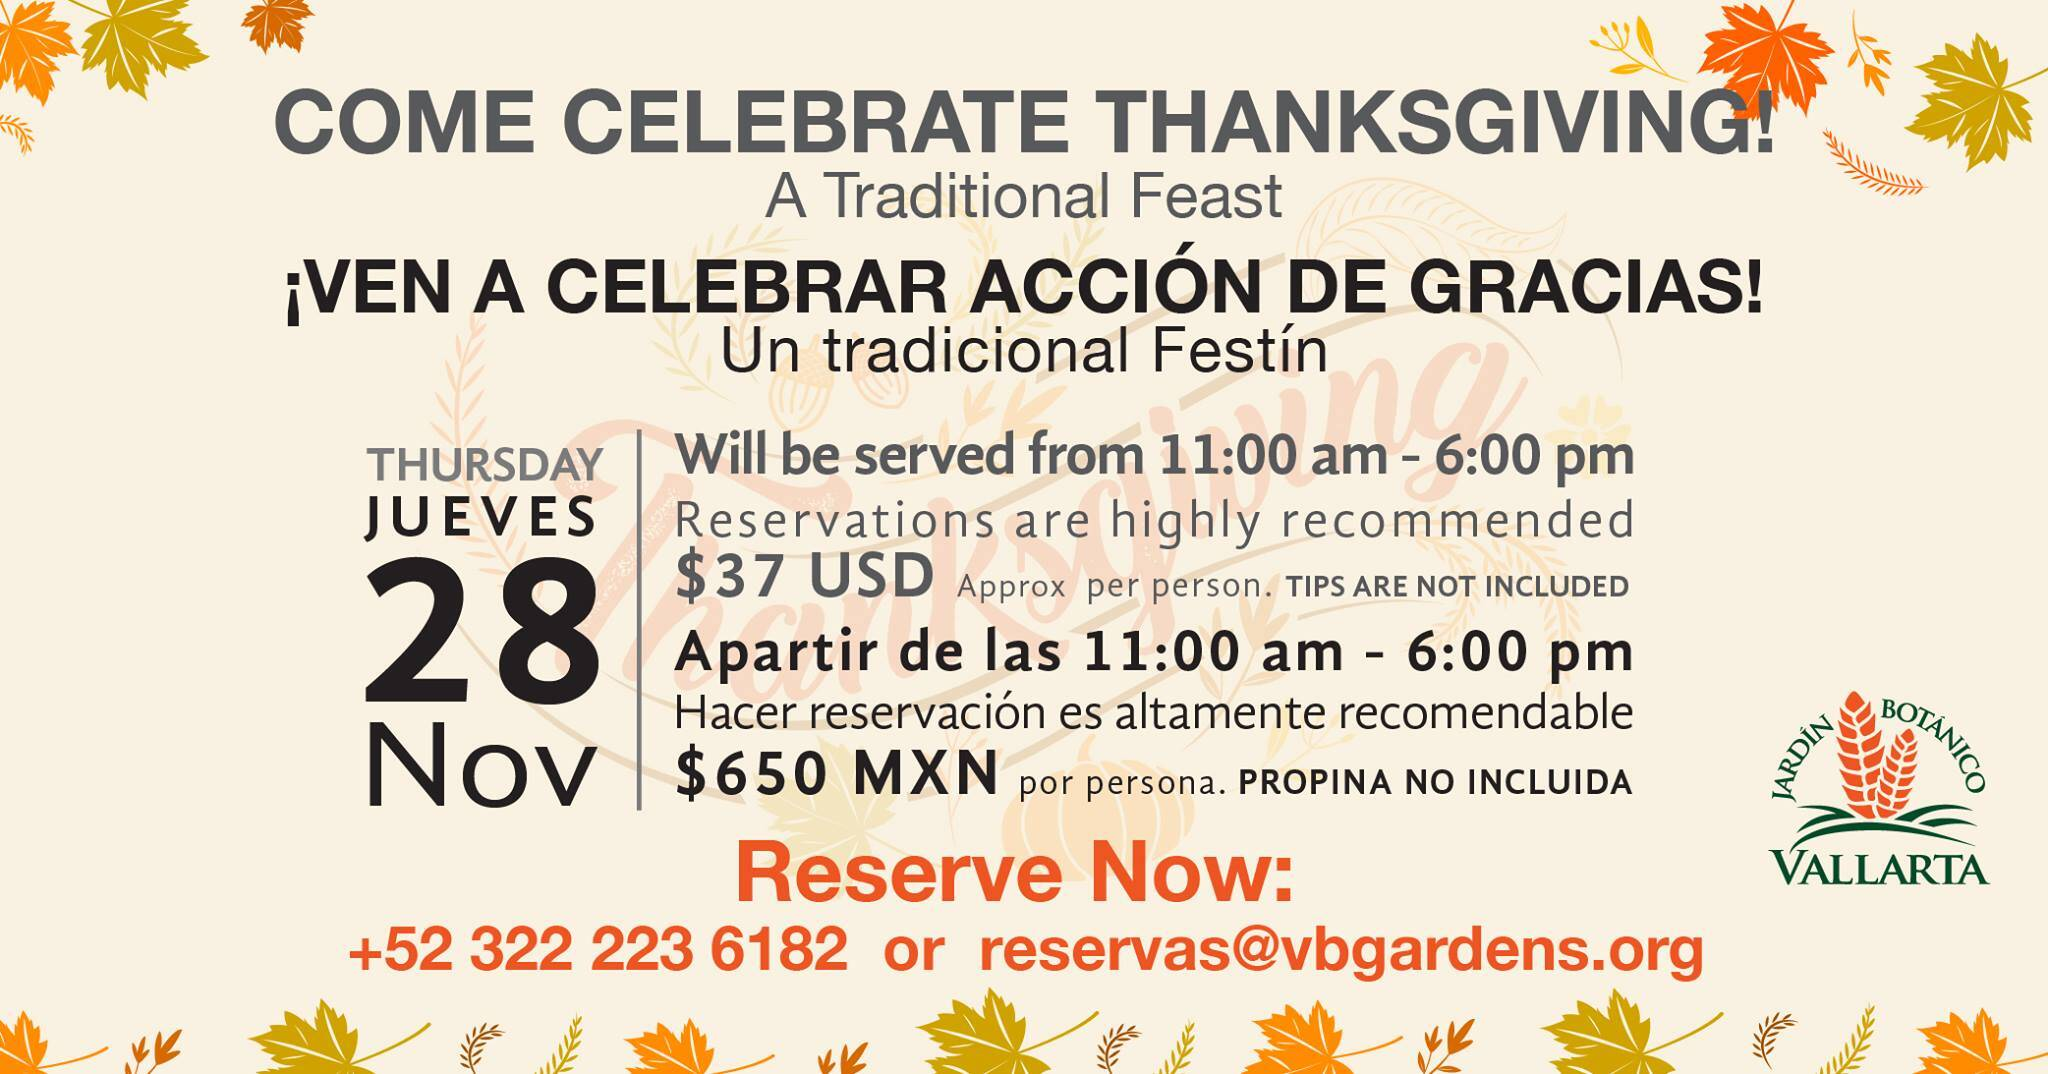 Come celebrate thanksgiving Vallarta Botanical Garden 2019